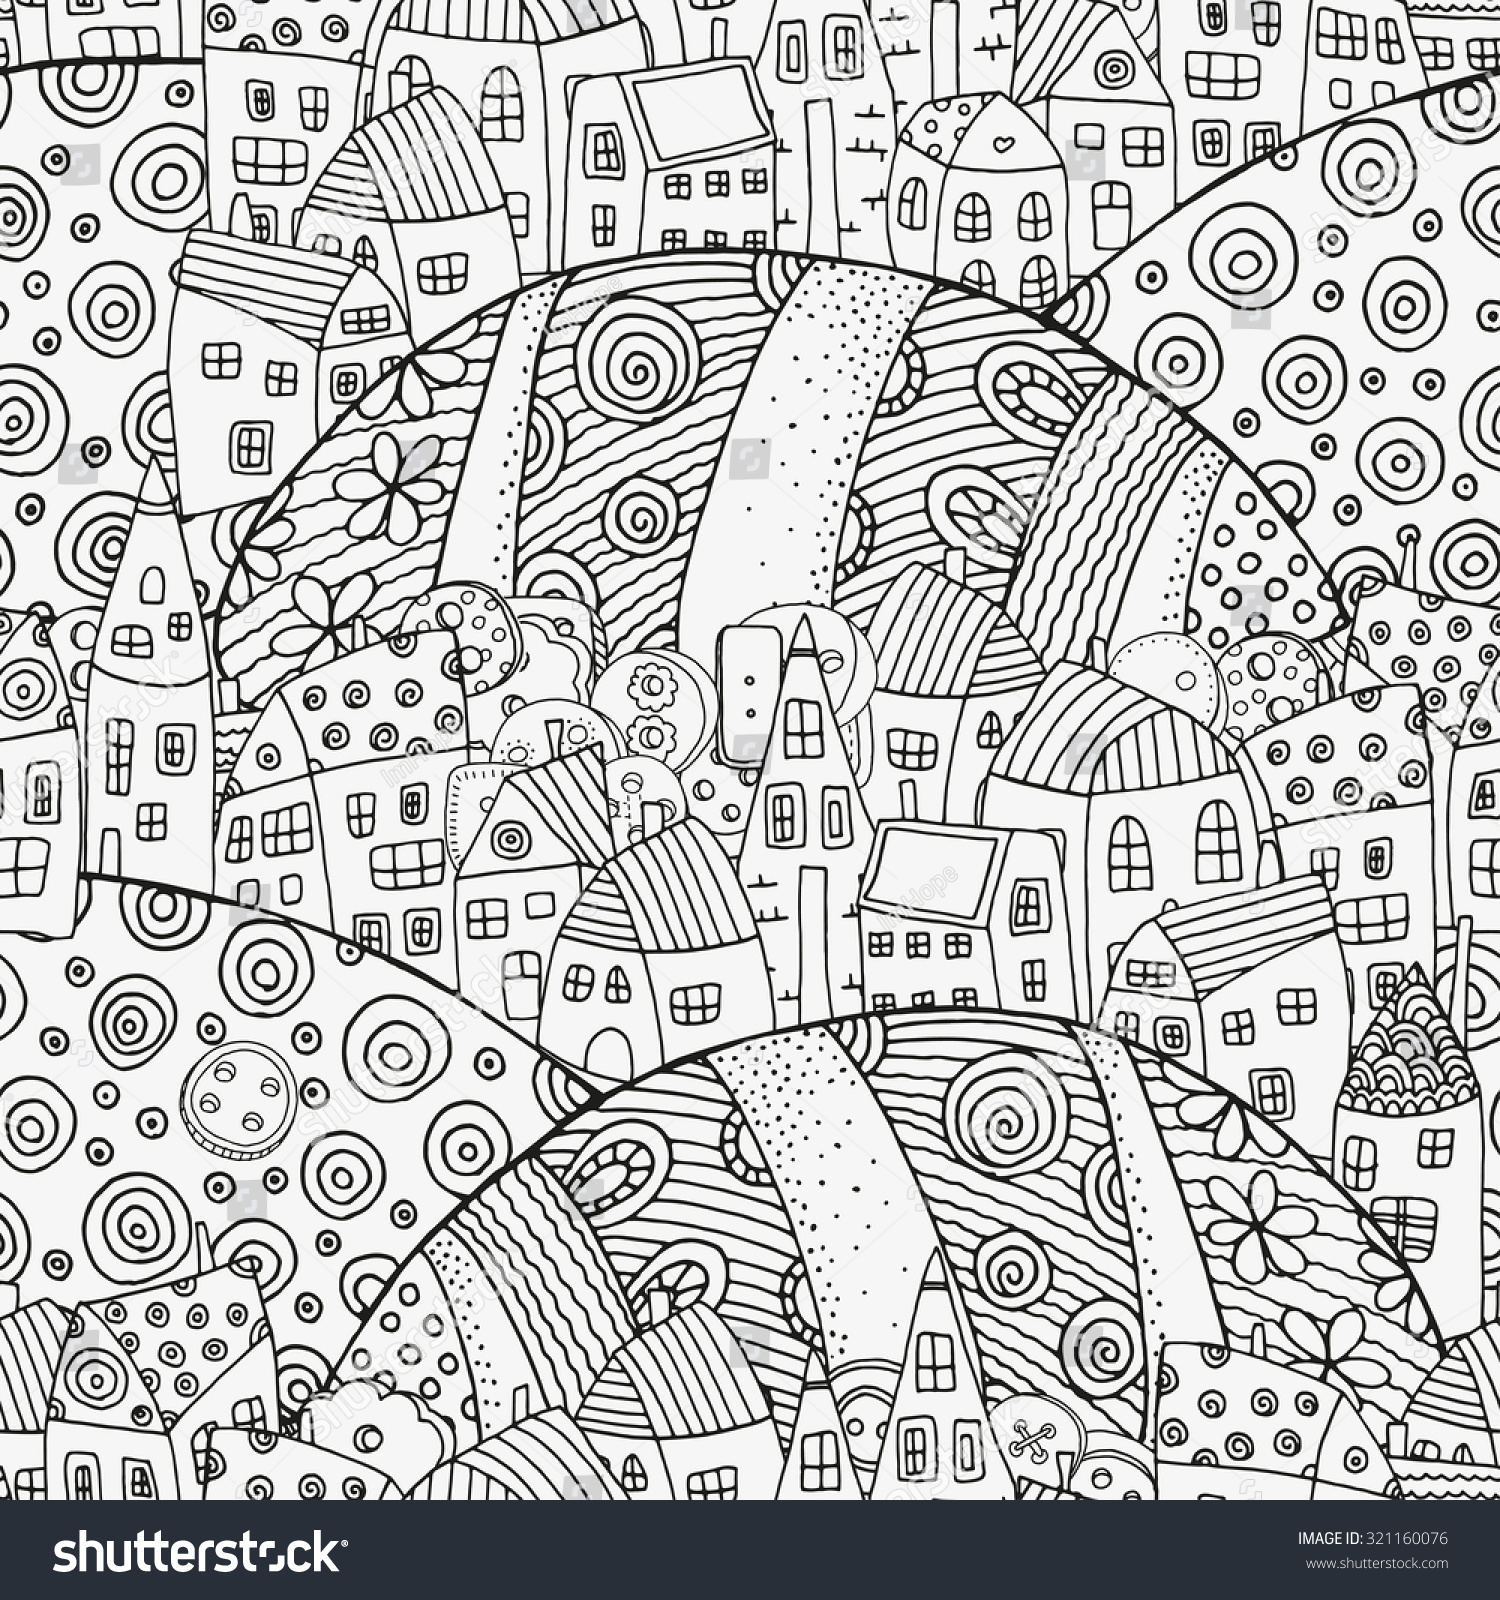 Th the magical city colouring in book - Seamless Pattern With Artistically Houses Magic City Fields Landscape Pattern For Coloring